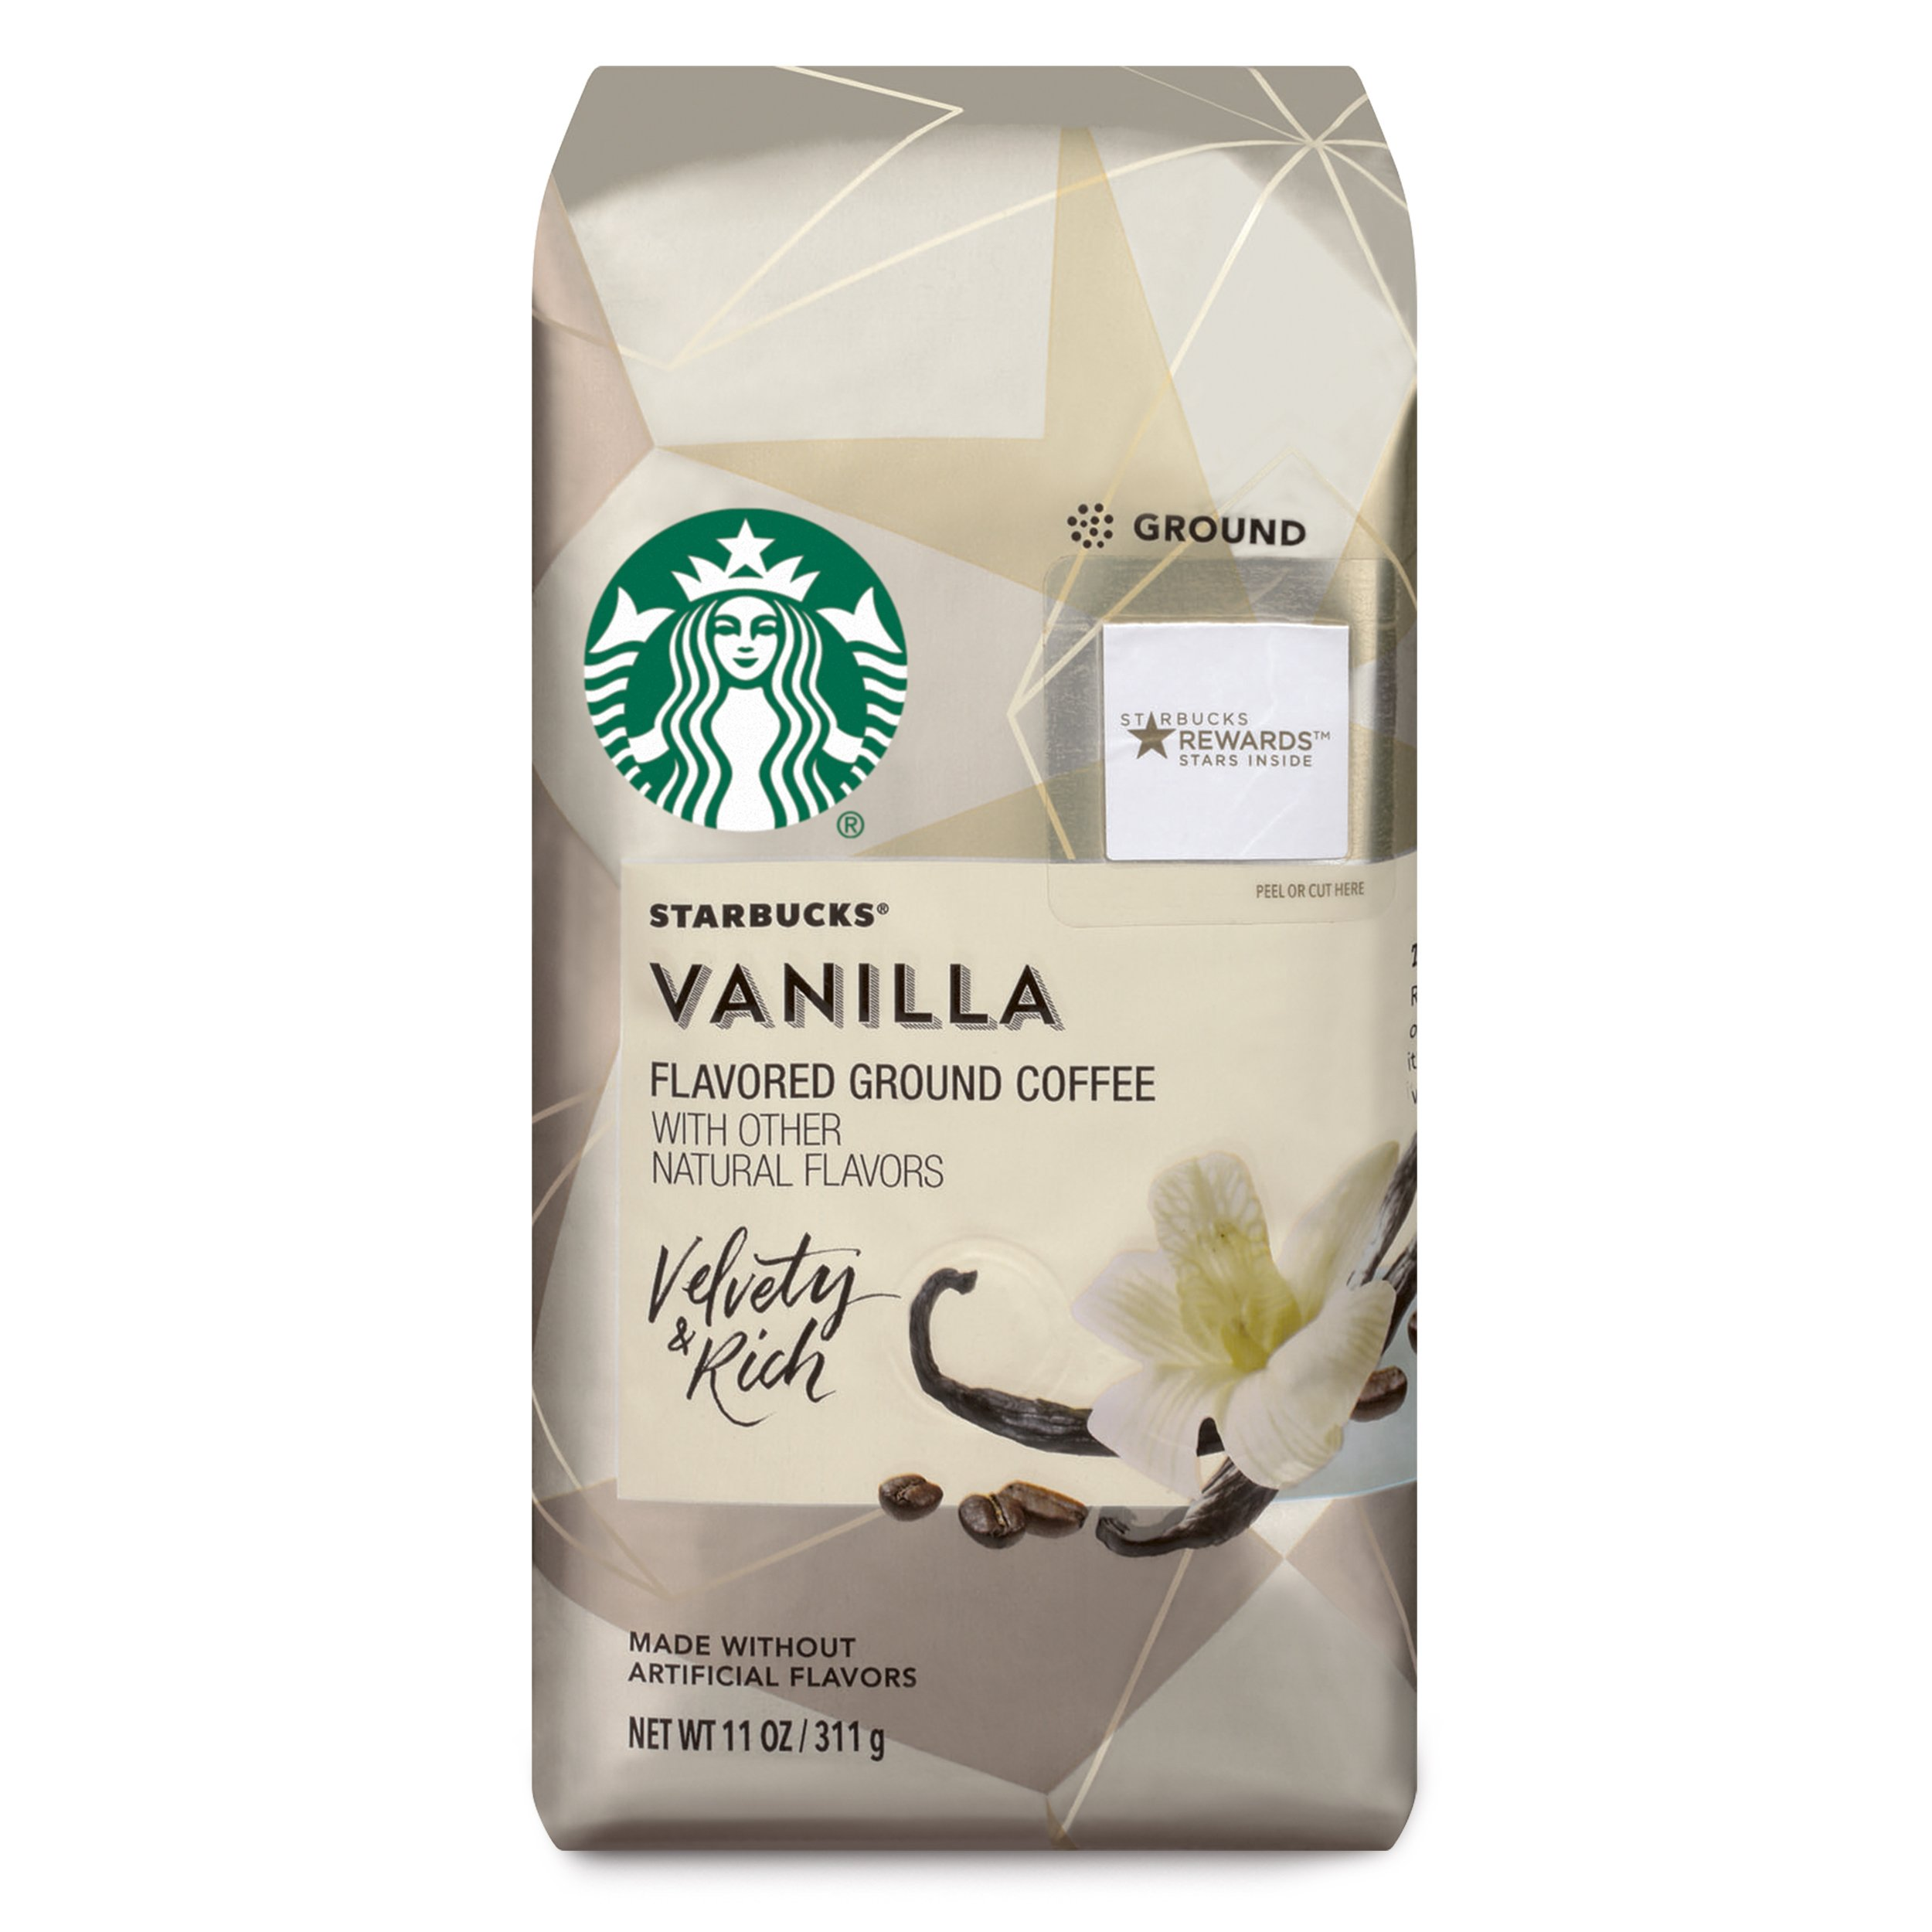 Starbucks Vanilla Flavored Ground Coffee, 11-Ounce Bag (Pack Of 6) by Starbucks